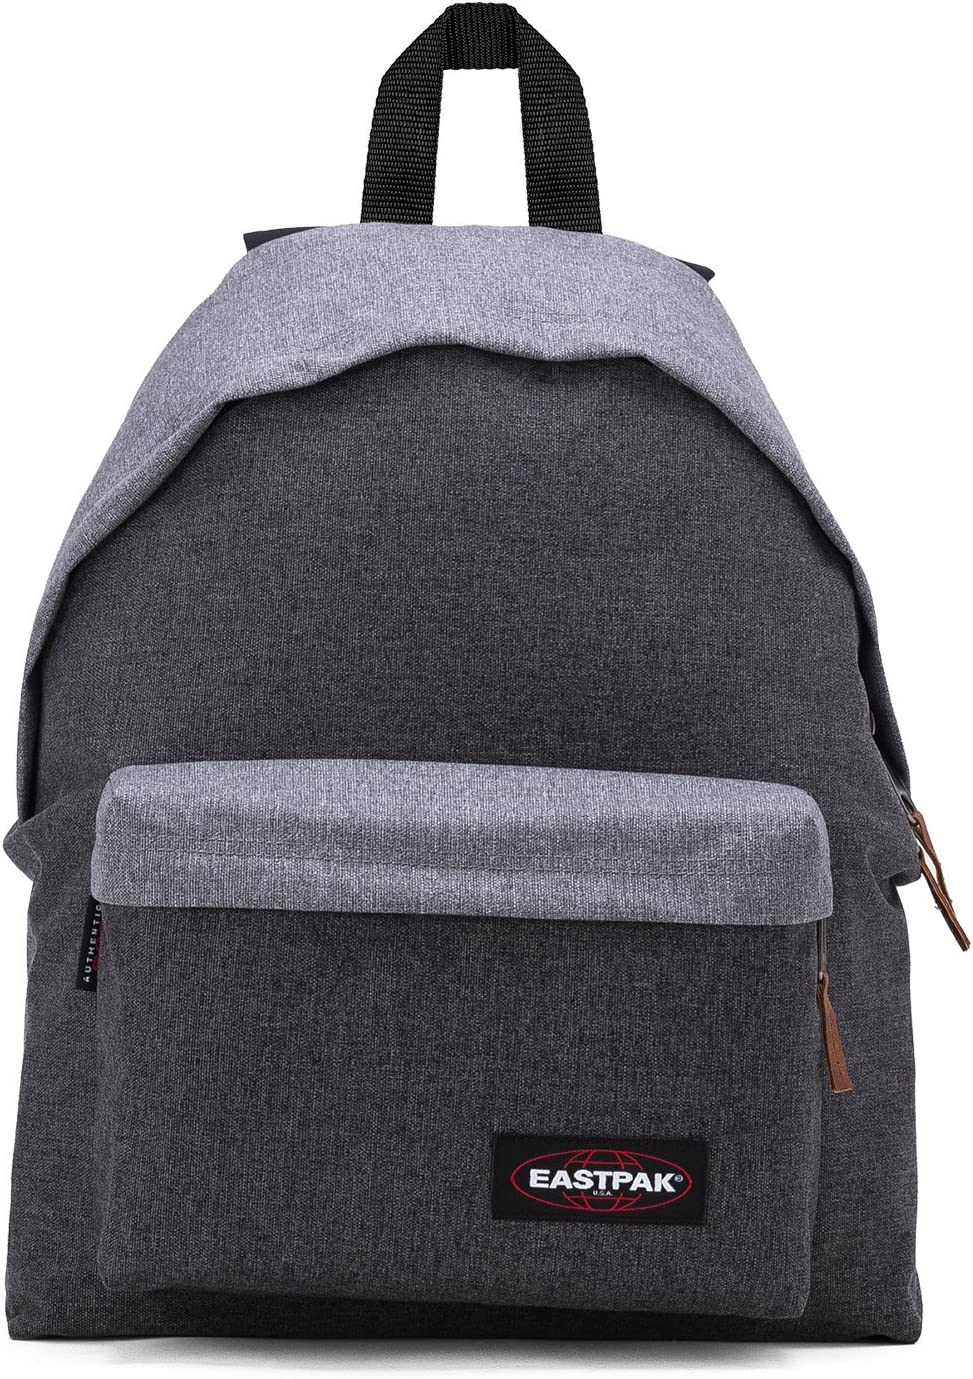 Eastpak Mochila: Amazon.es: Equipaje